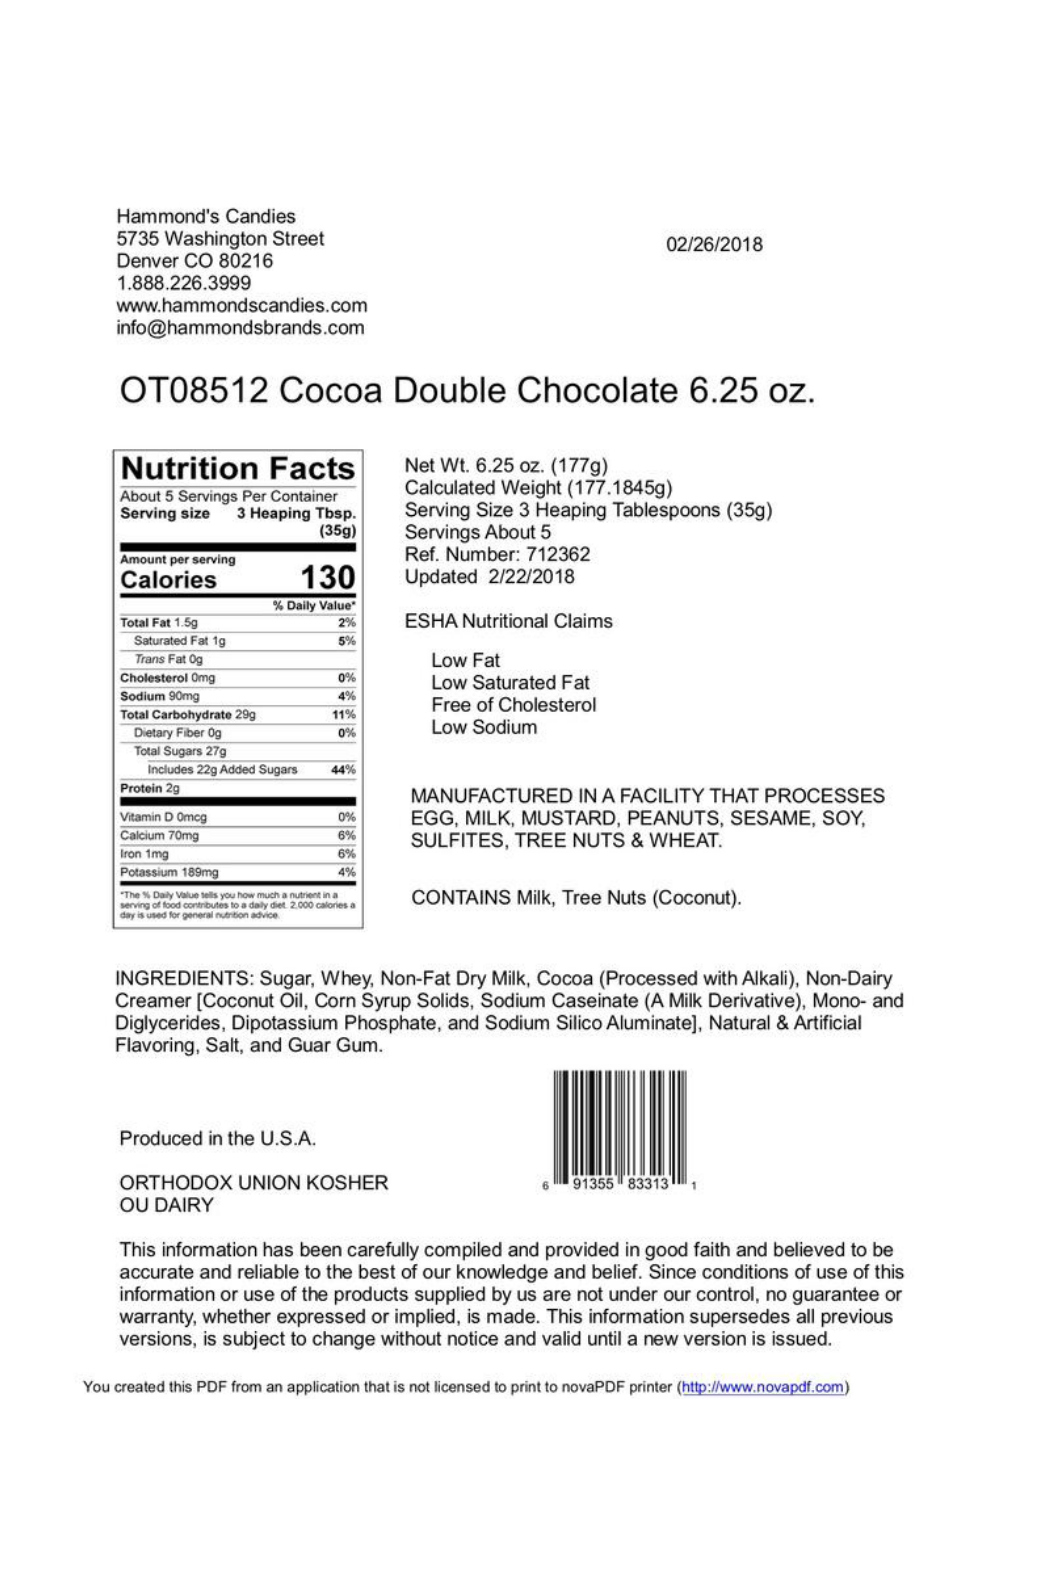 Hammond's Candies Double Chocolate Cocoa - Front Full Image